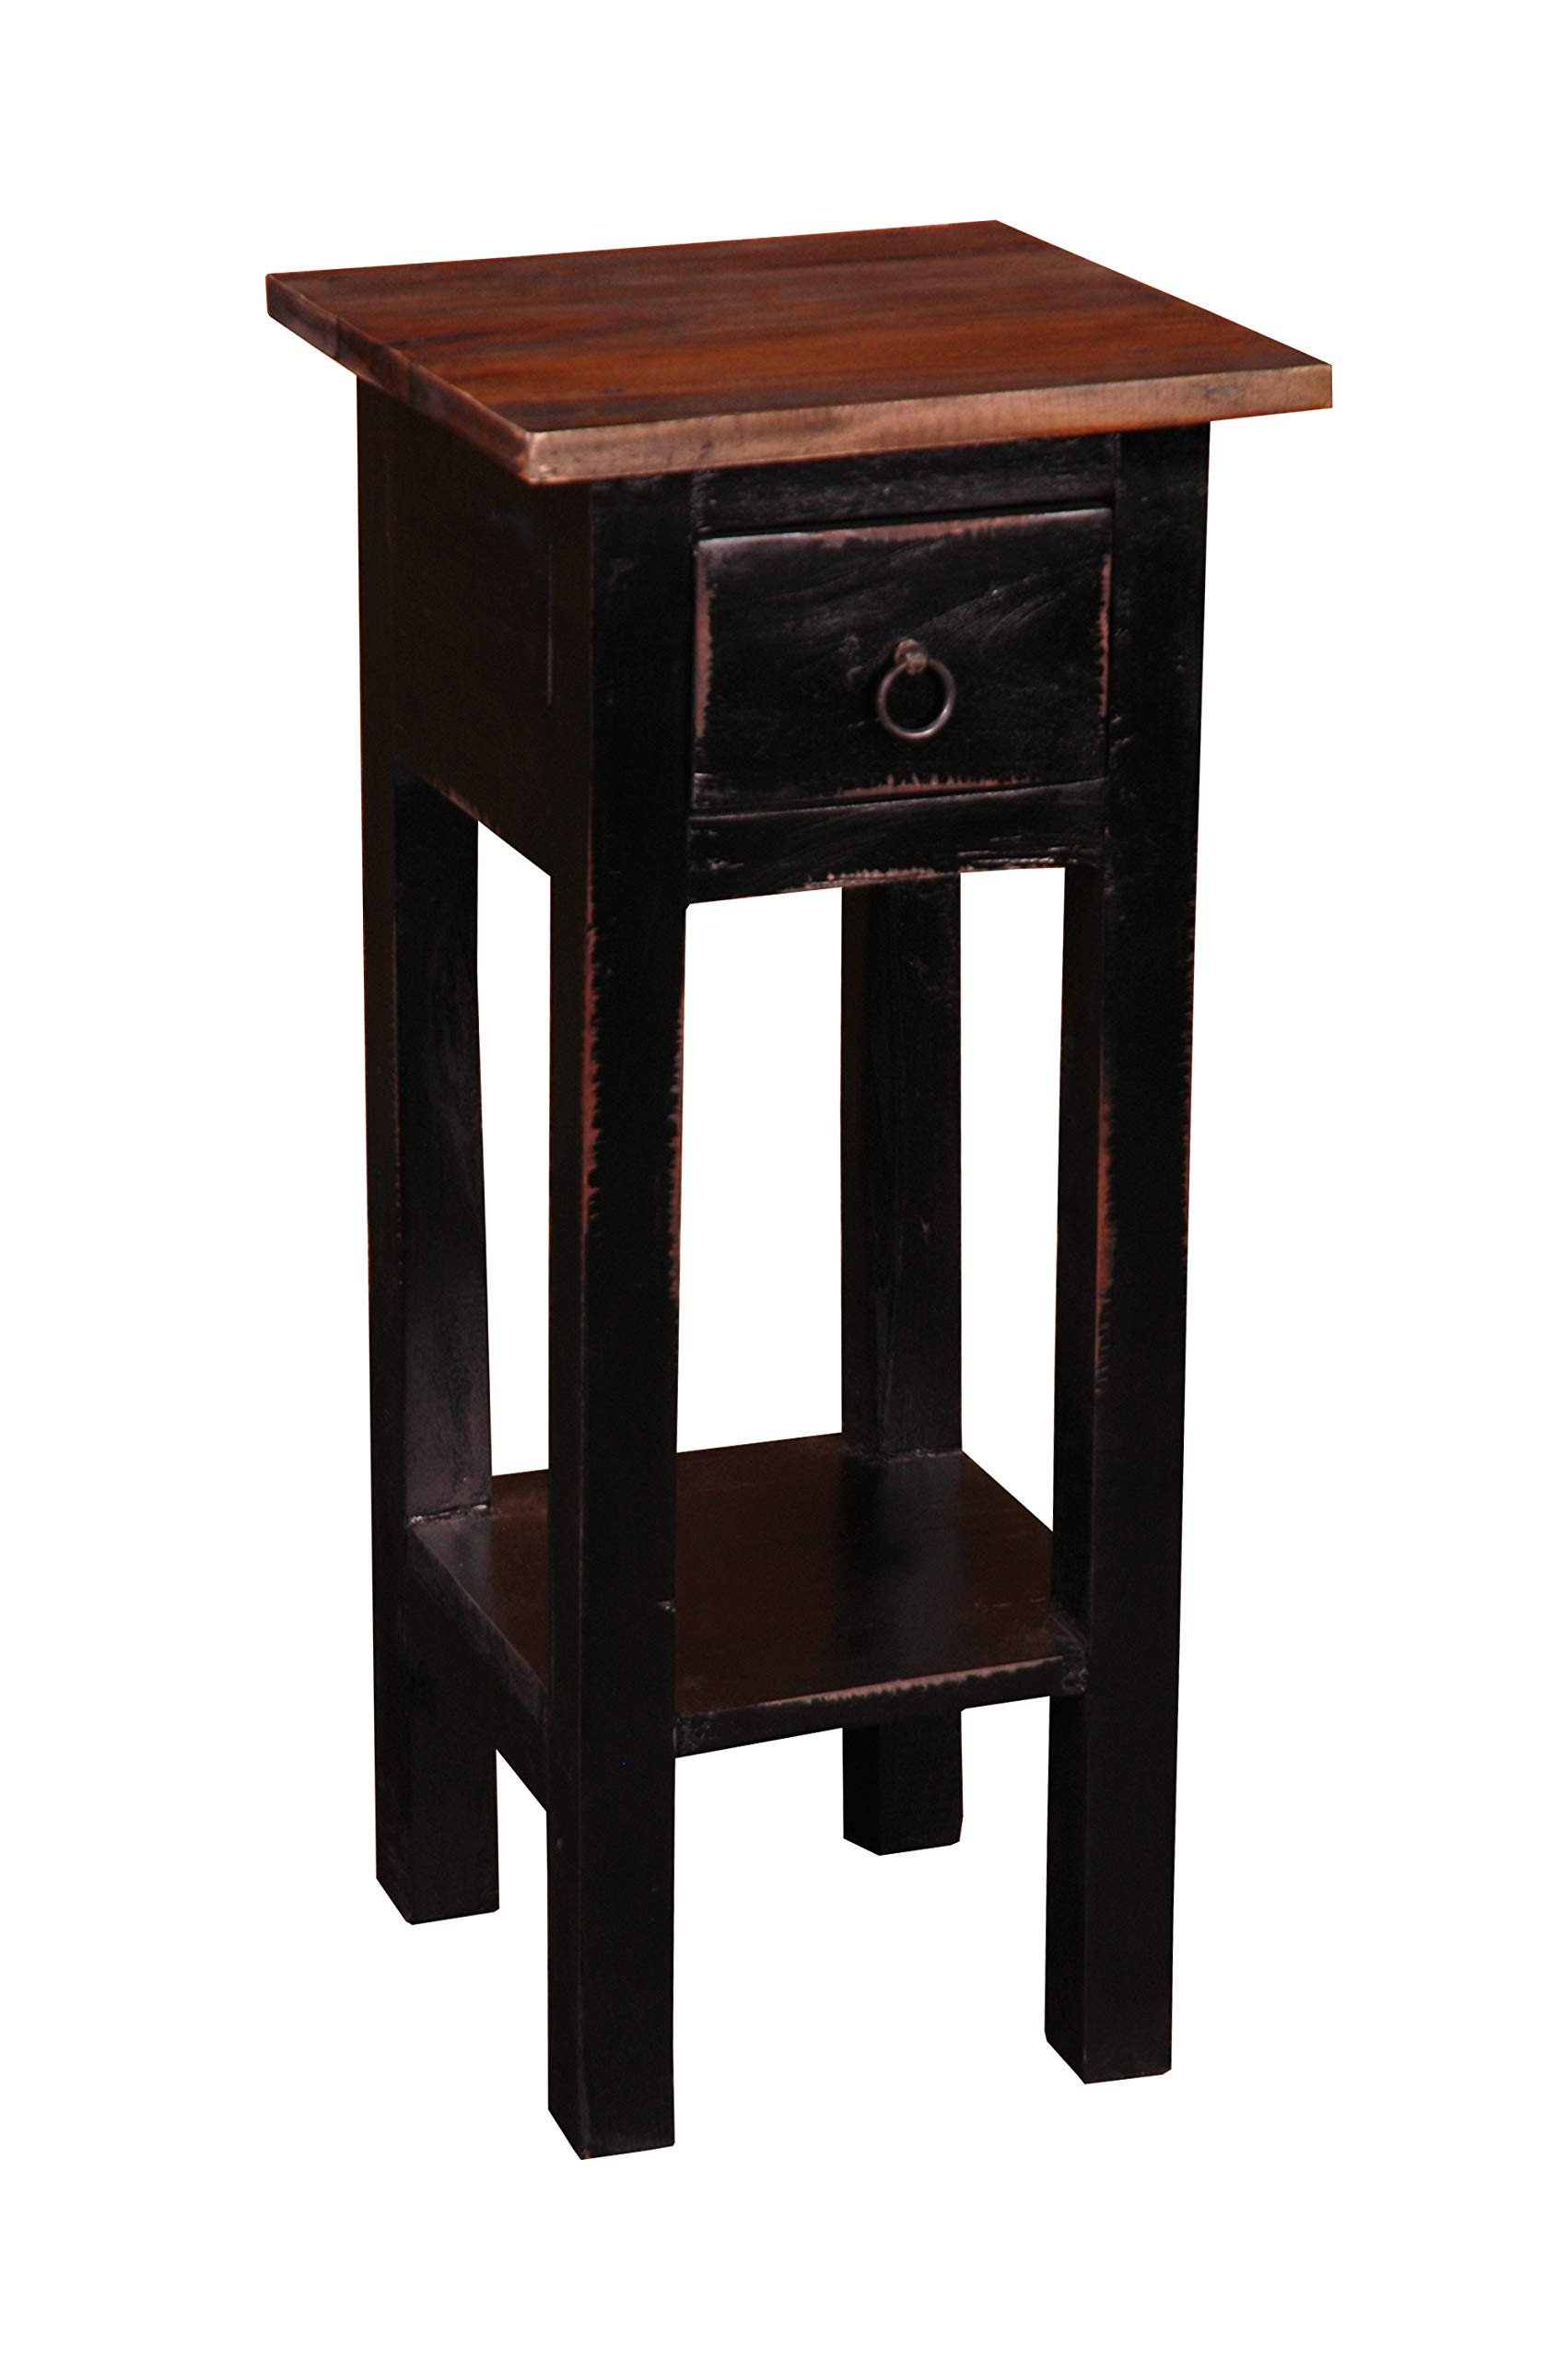 Sunset Trading Shabby Chic Cottage Side Table, Small One Drawer, Black, Brown by Sunset Trading